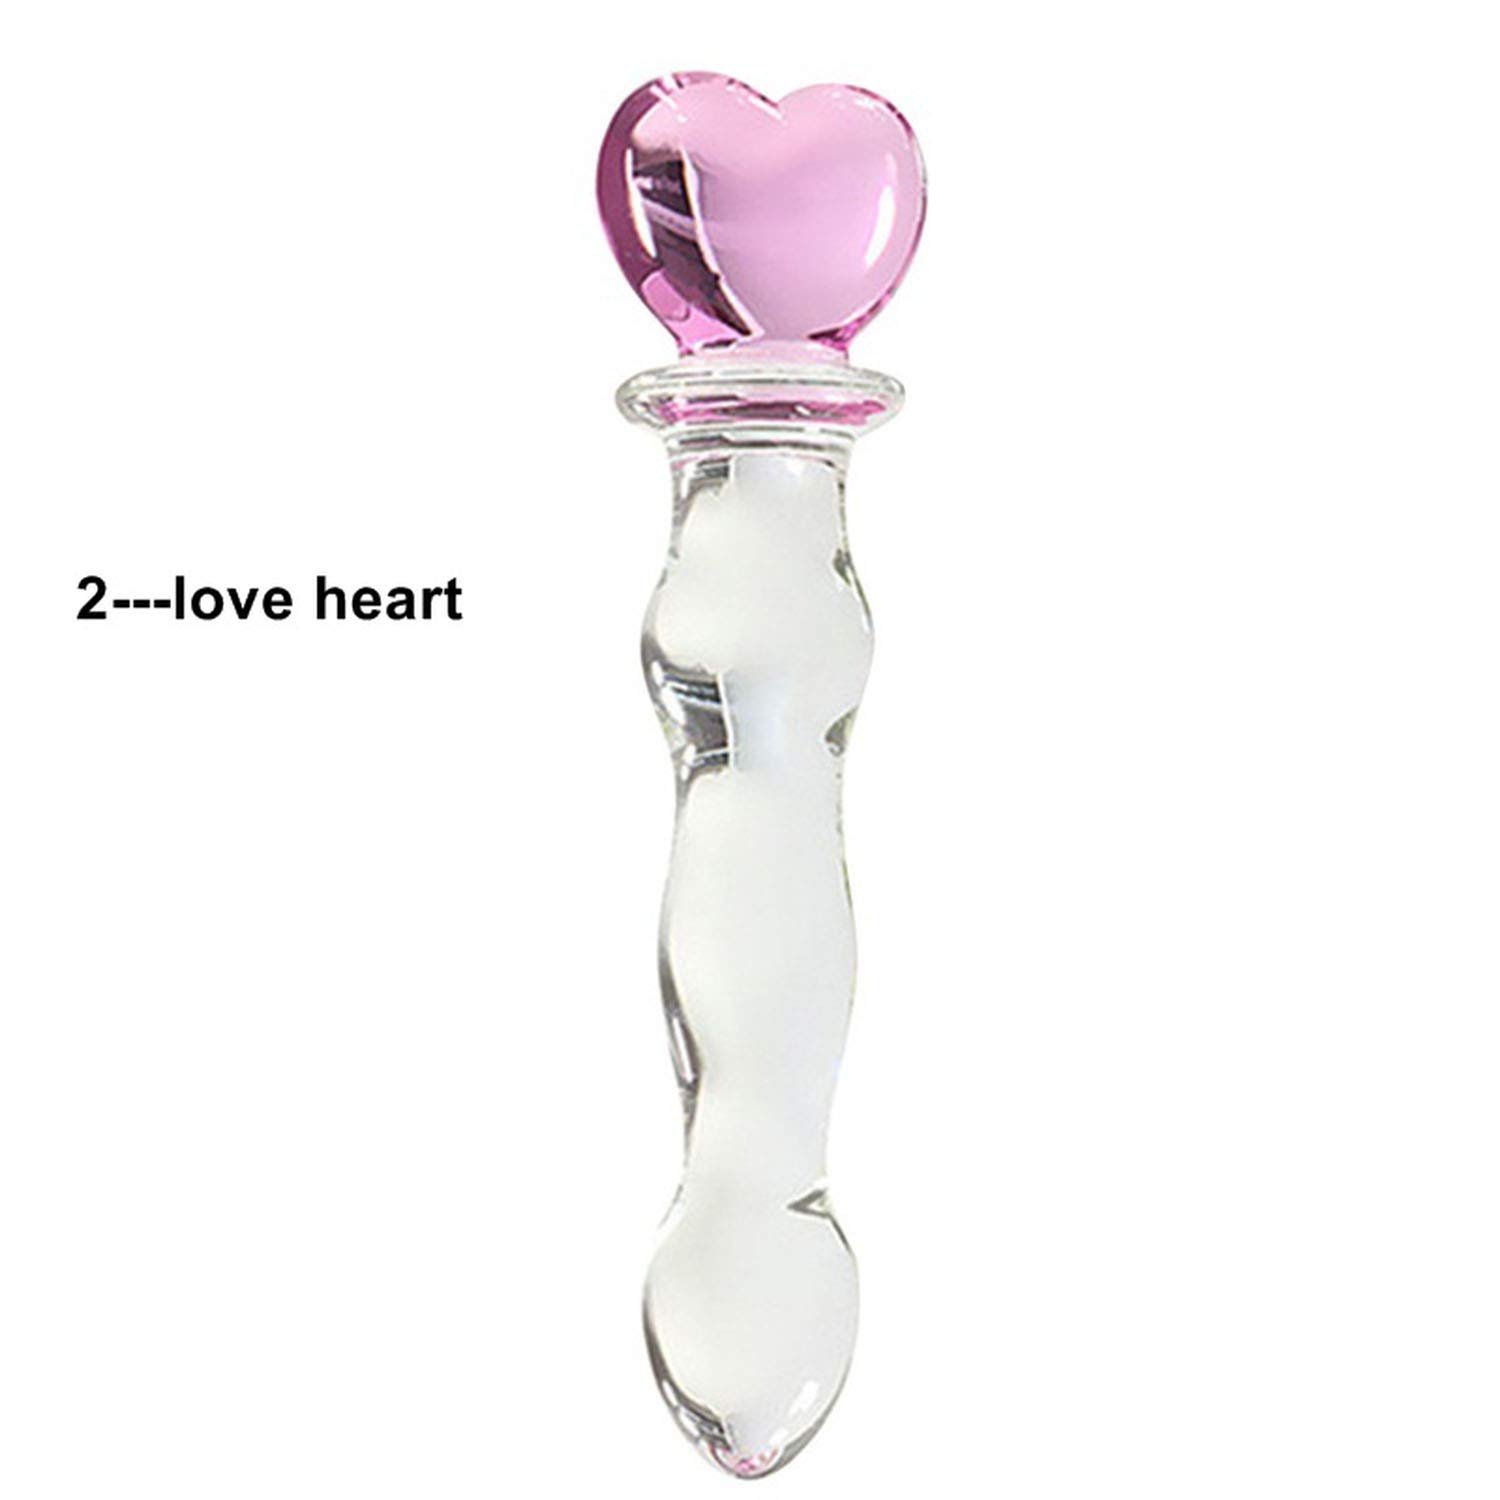 Biryse Crystal Glass Sex Toys Penis Glass Beads Vaginal Anal Plug Stimulation Buttplug Sex Toys Vibrator Sex Toys for Woman Sex Shop,4pcs,Refer to Pictures by Biryse (Image #3)